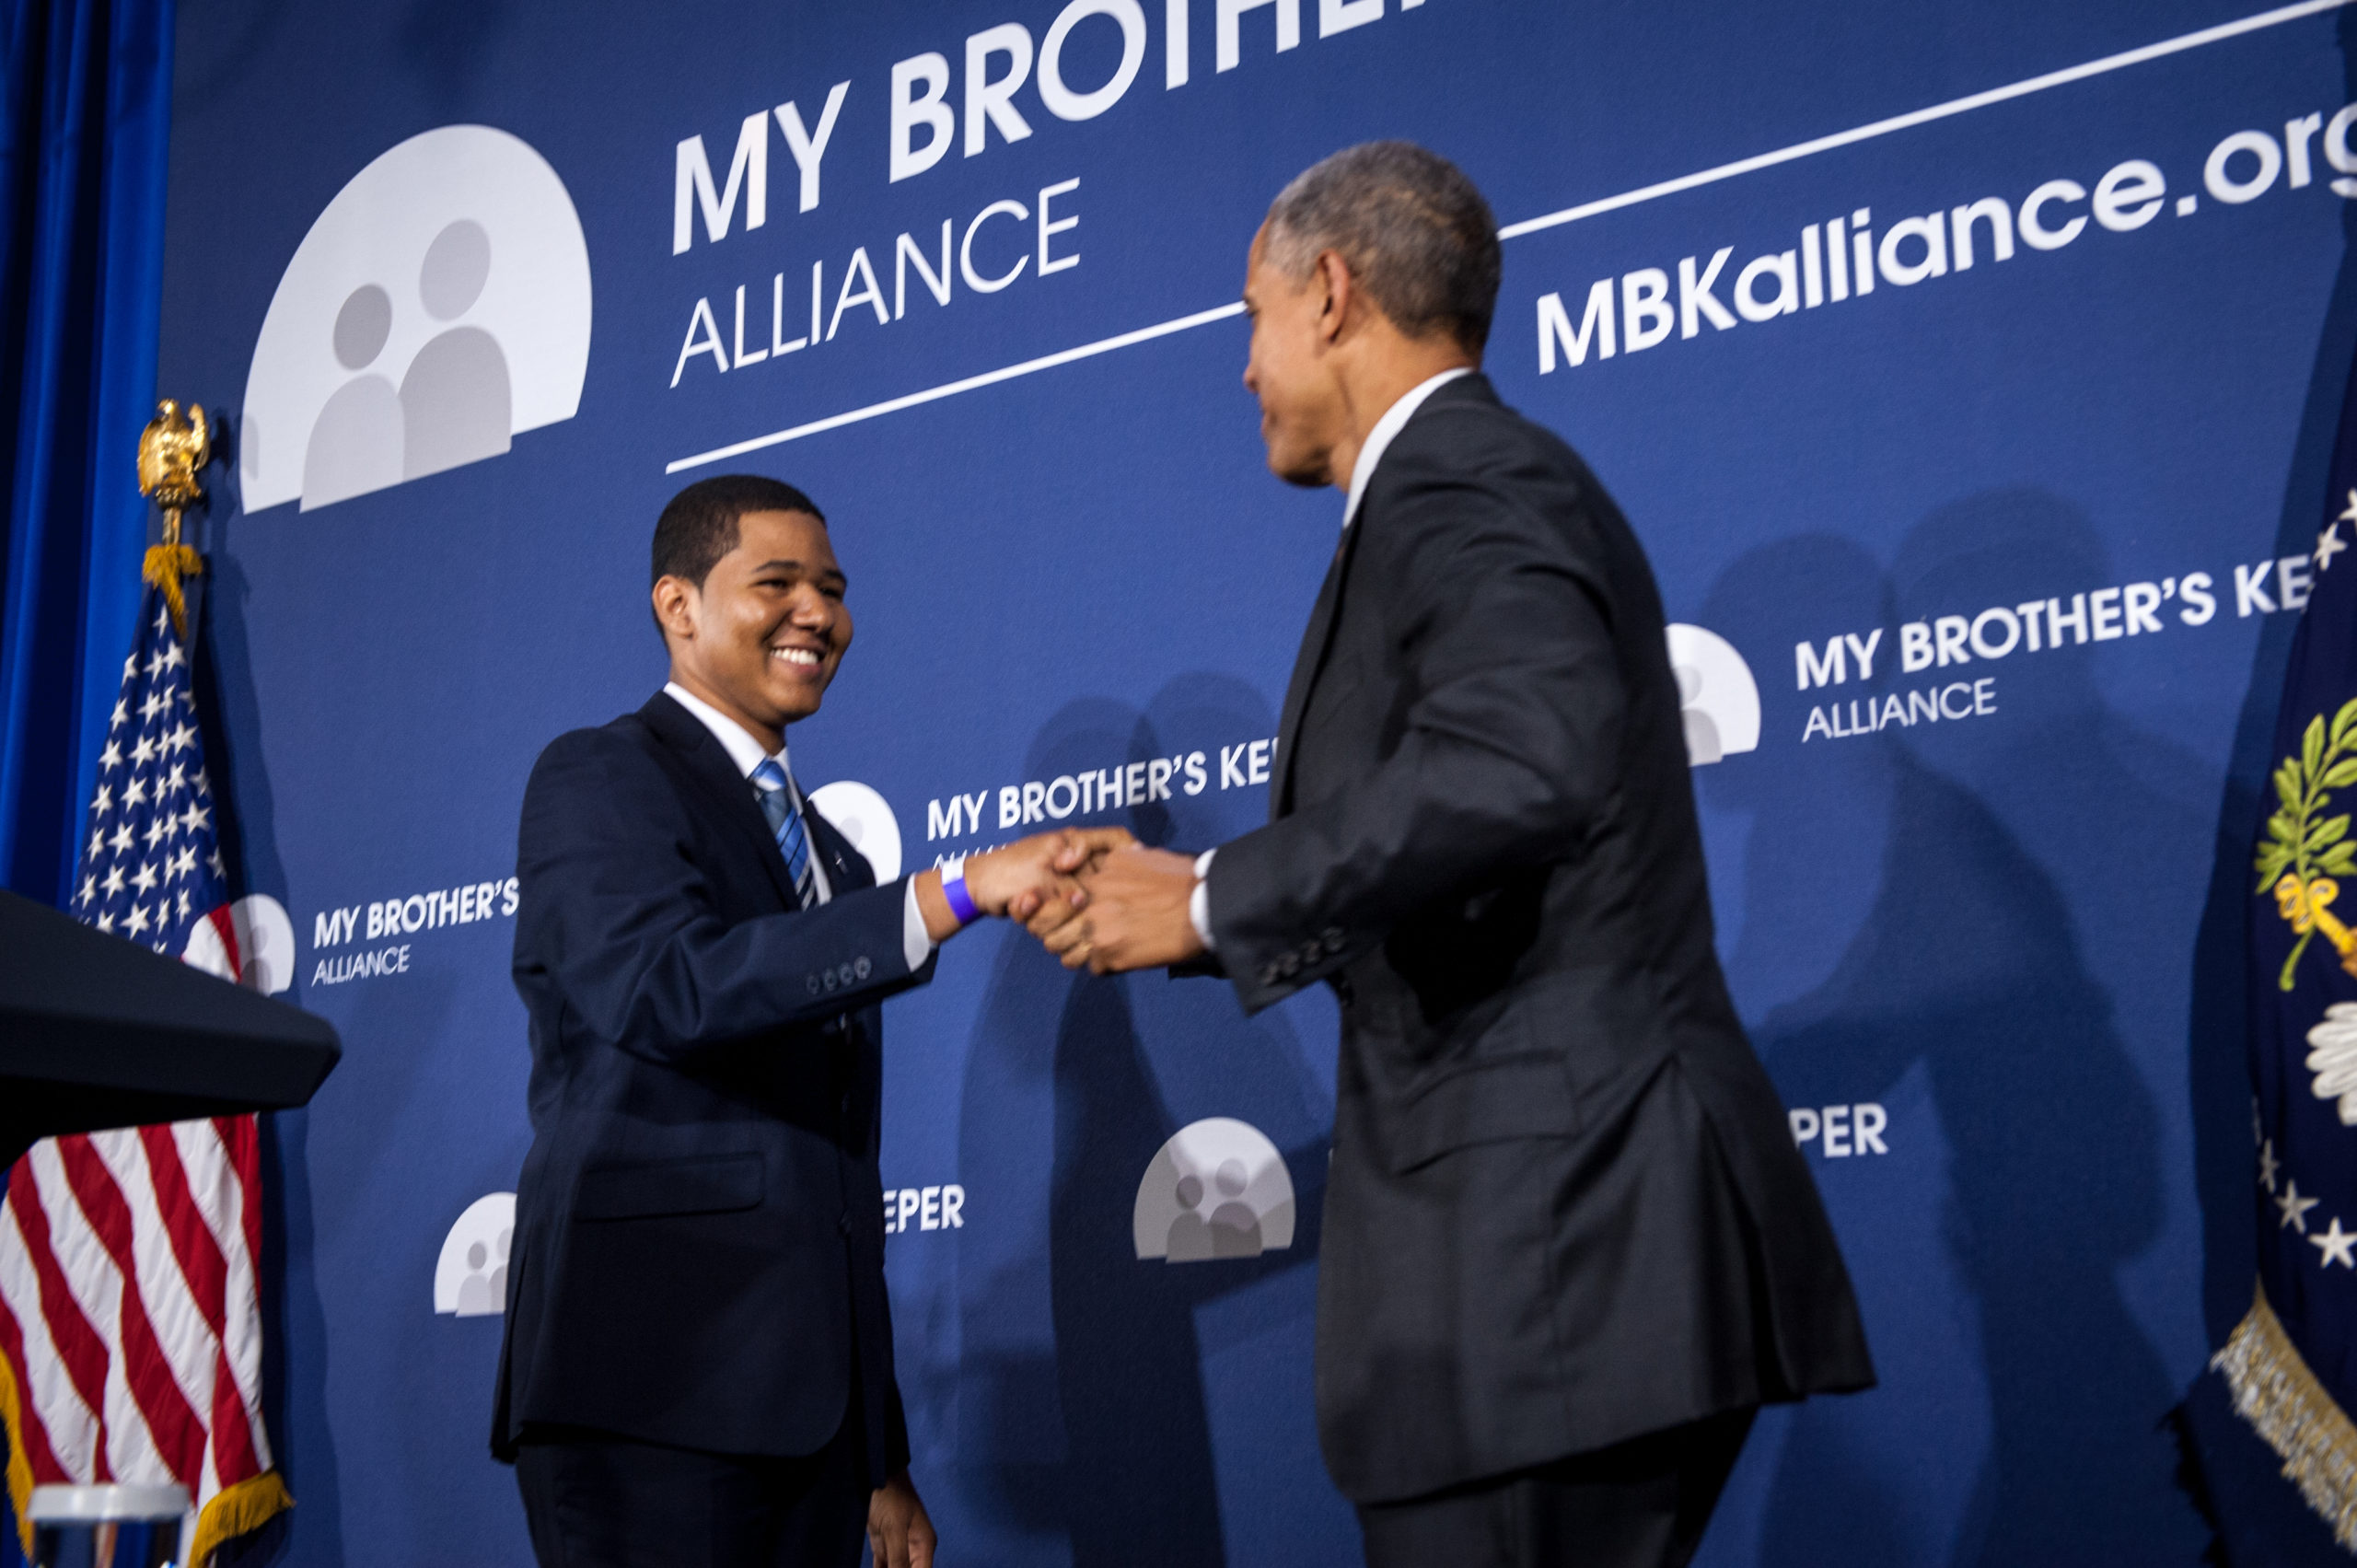 My Brother's Keeper Alliance Launch